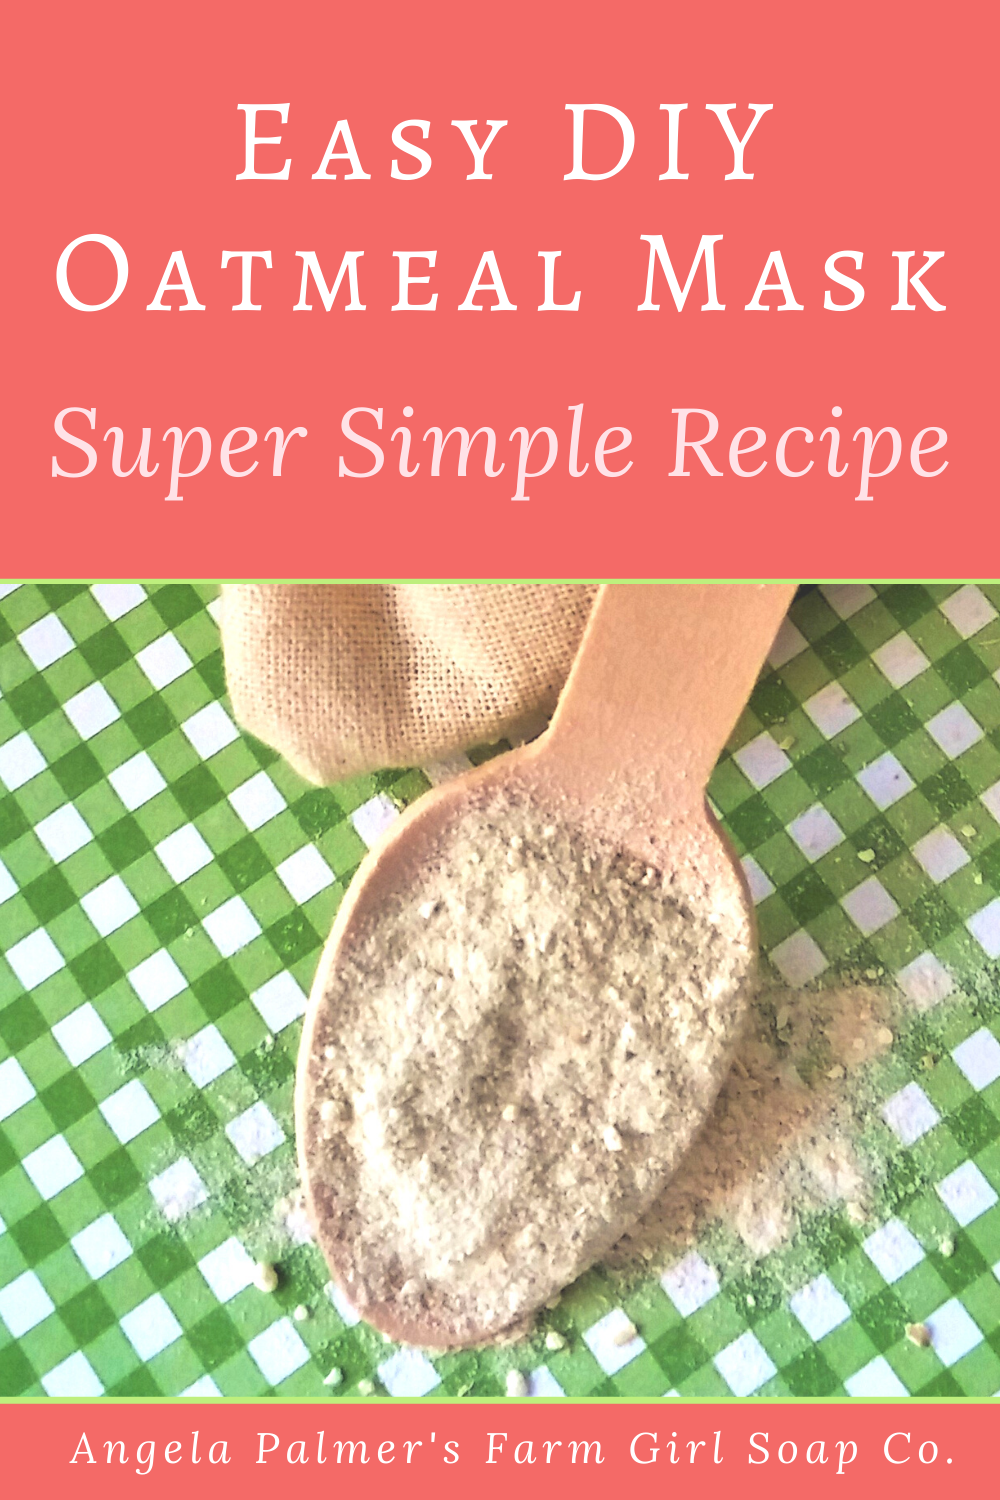 This super easy DIY oatmeal face mask recipe also doubles as a gentle facial scrub. You can make this facial mask in just minutes with simple pantry ingredients. Perfect for all skin types!